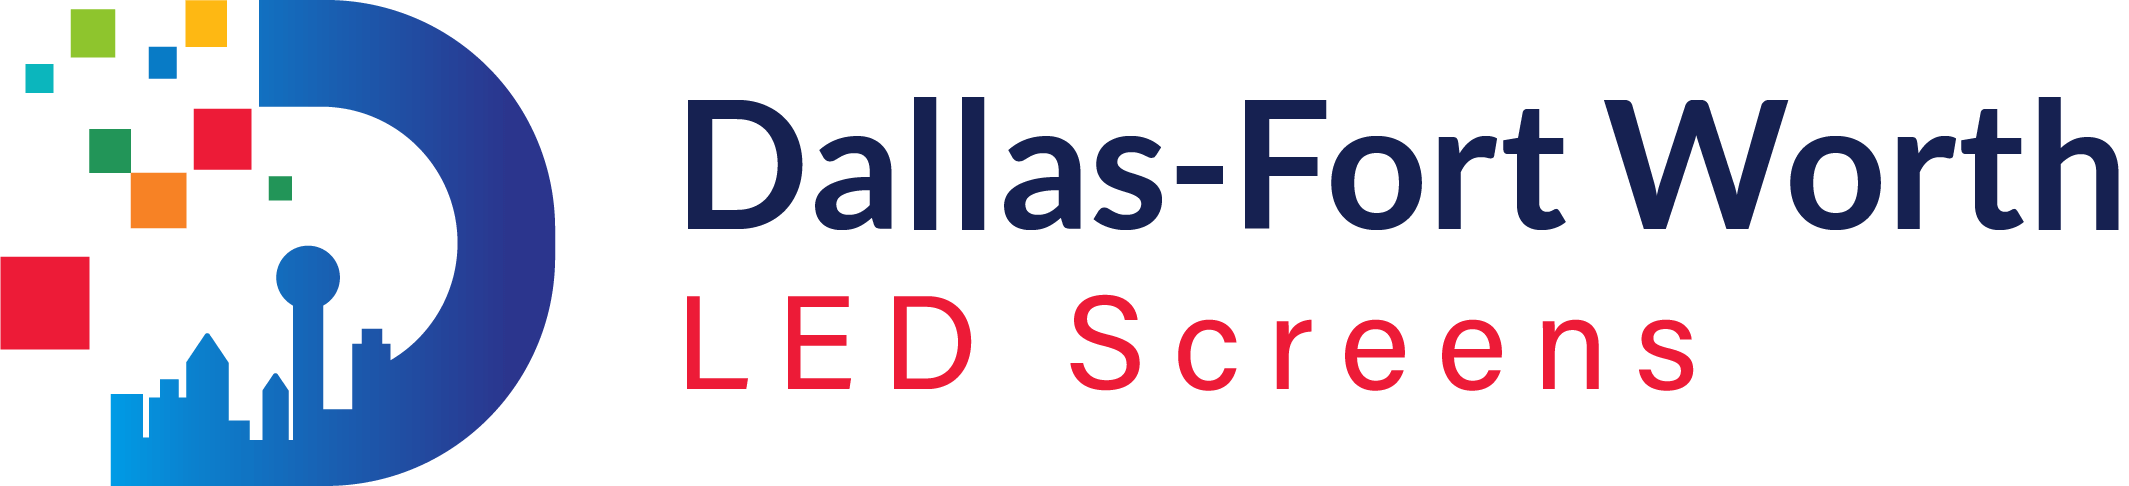 Dallas-Fort Worth LED Screens logo